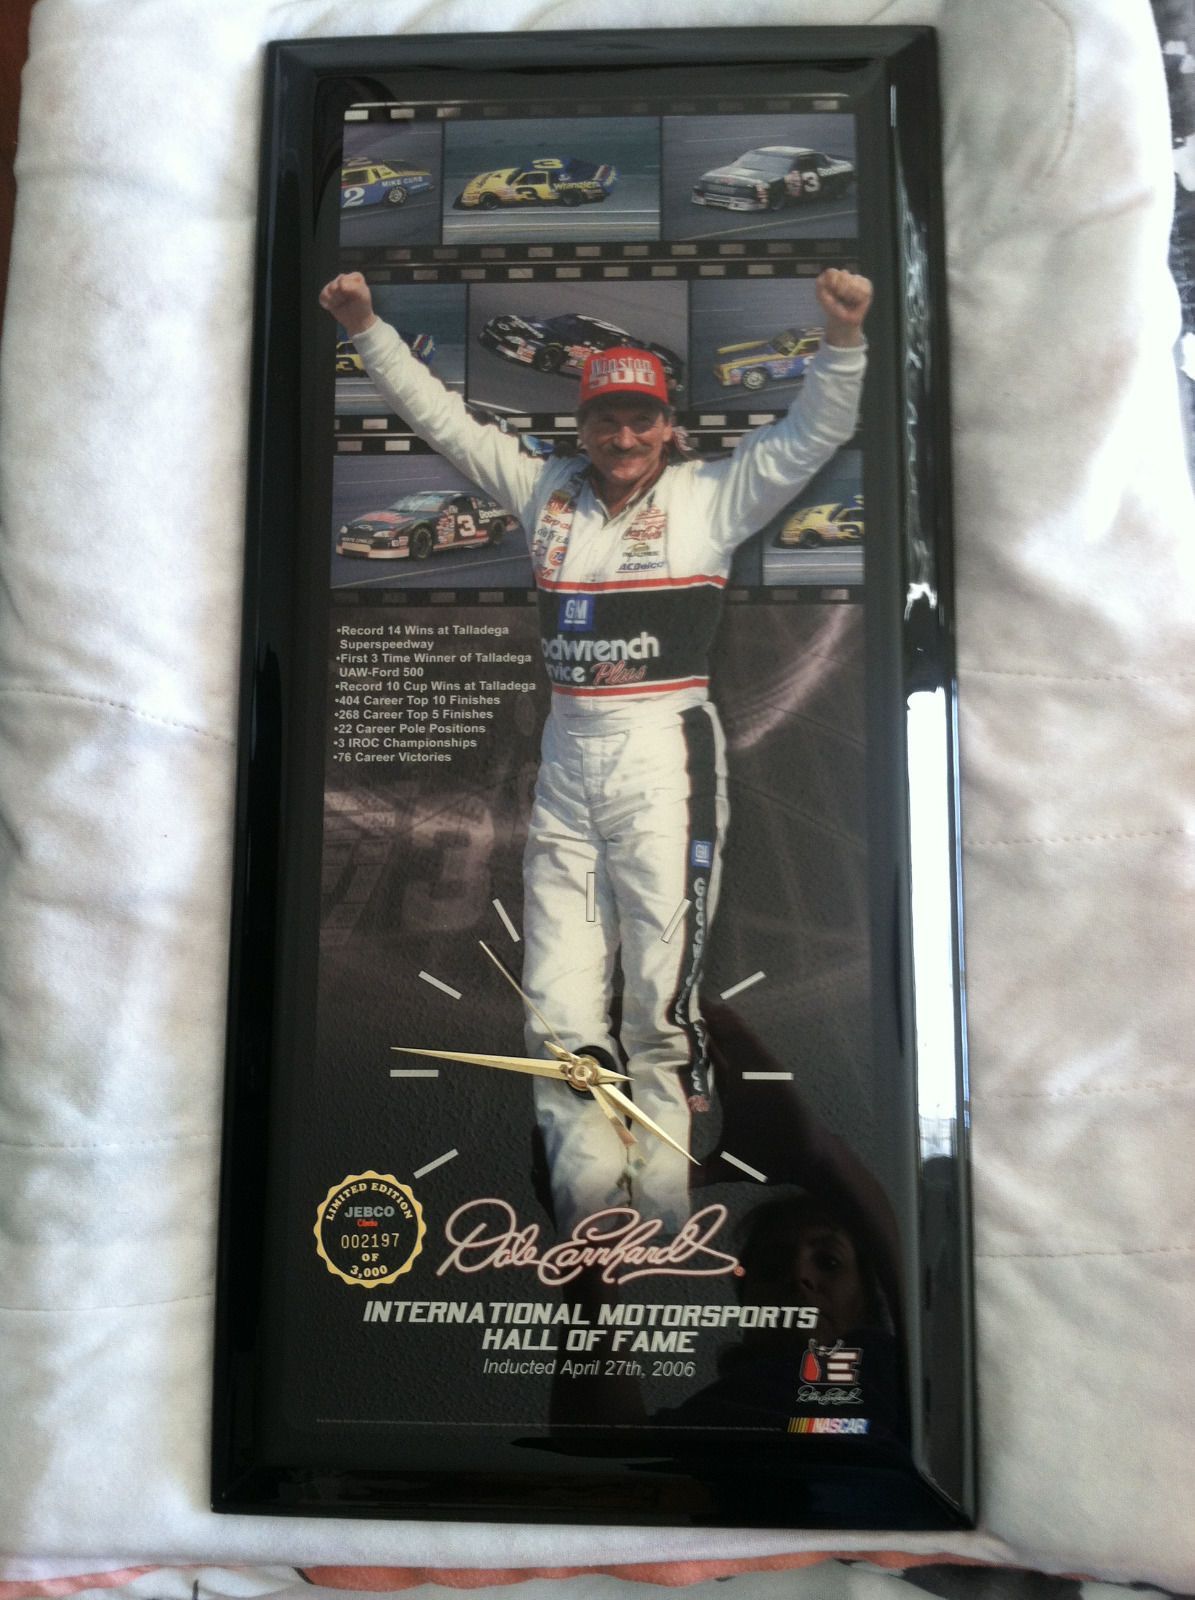 e302a8f37e3 Dale Earnhardt Sr. JEBCO Clock Limited Edition